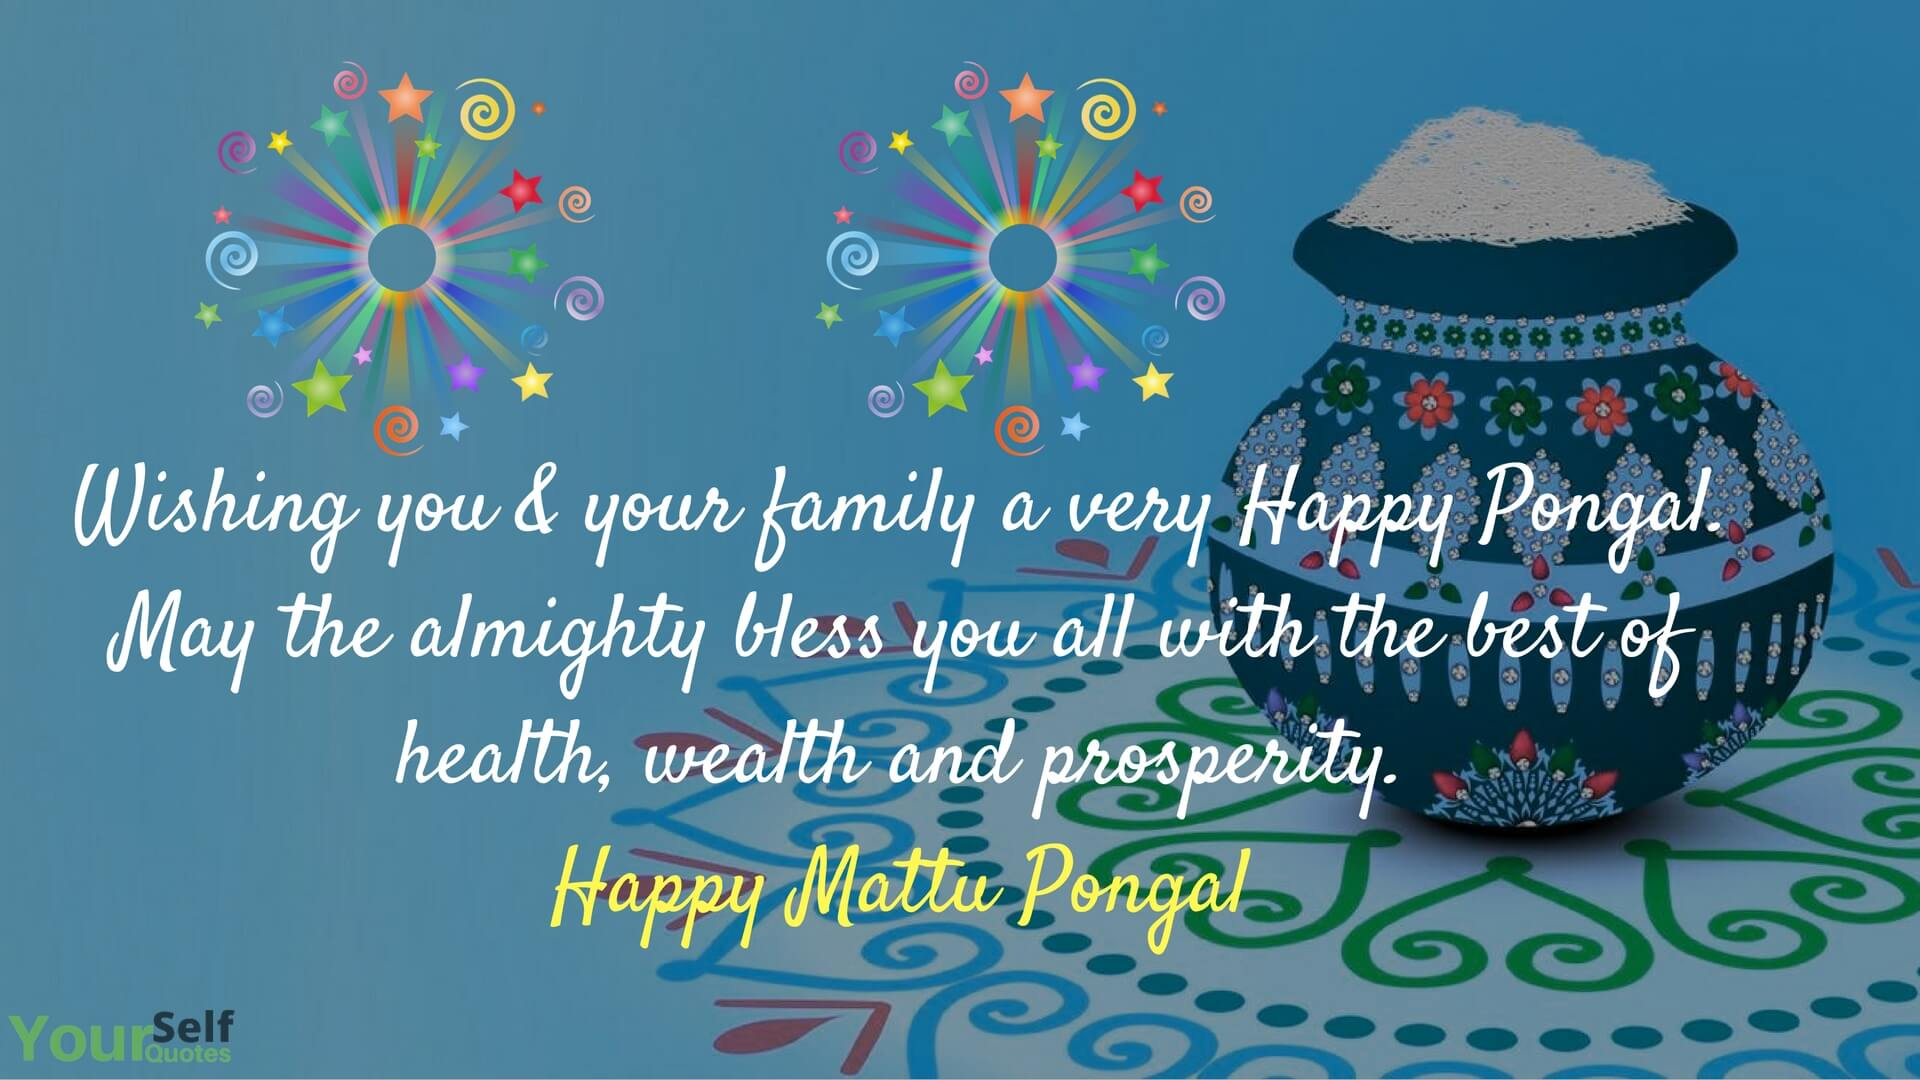 Happy pongal festival wishes 2018 messages greetings images pongal greetings cards kristyandbryce Images